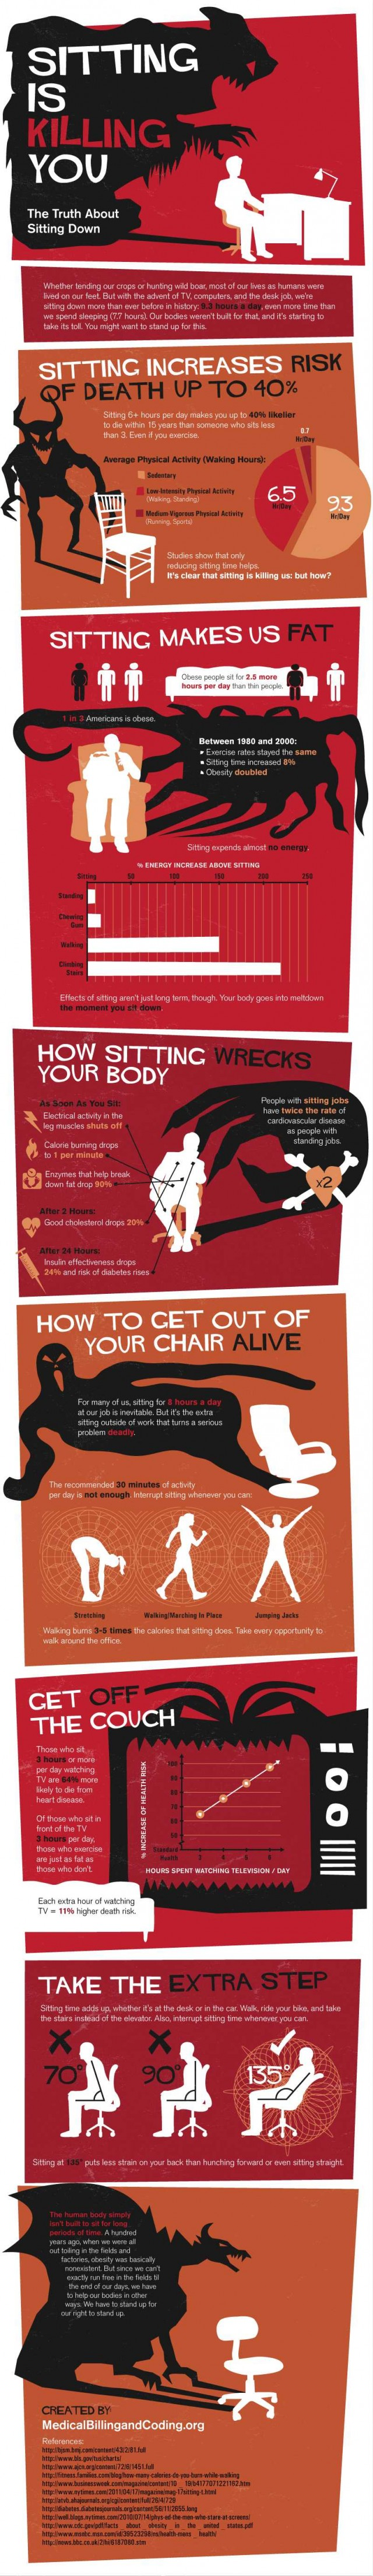 Sitting-Is-Killing-You-infographic